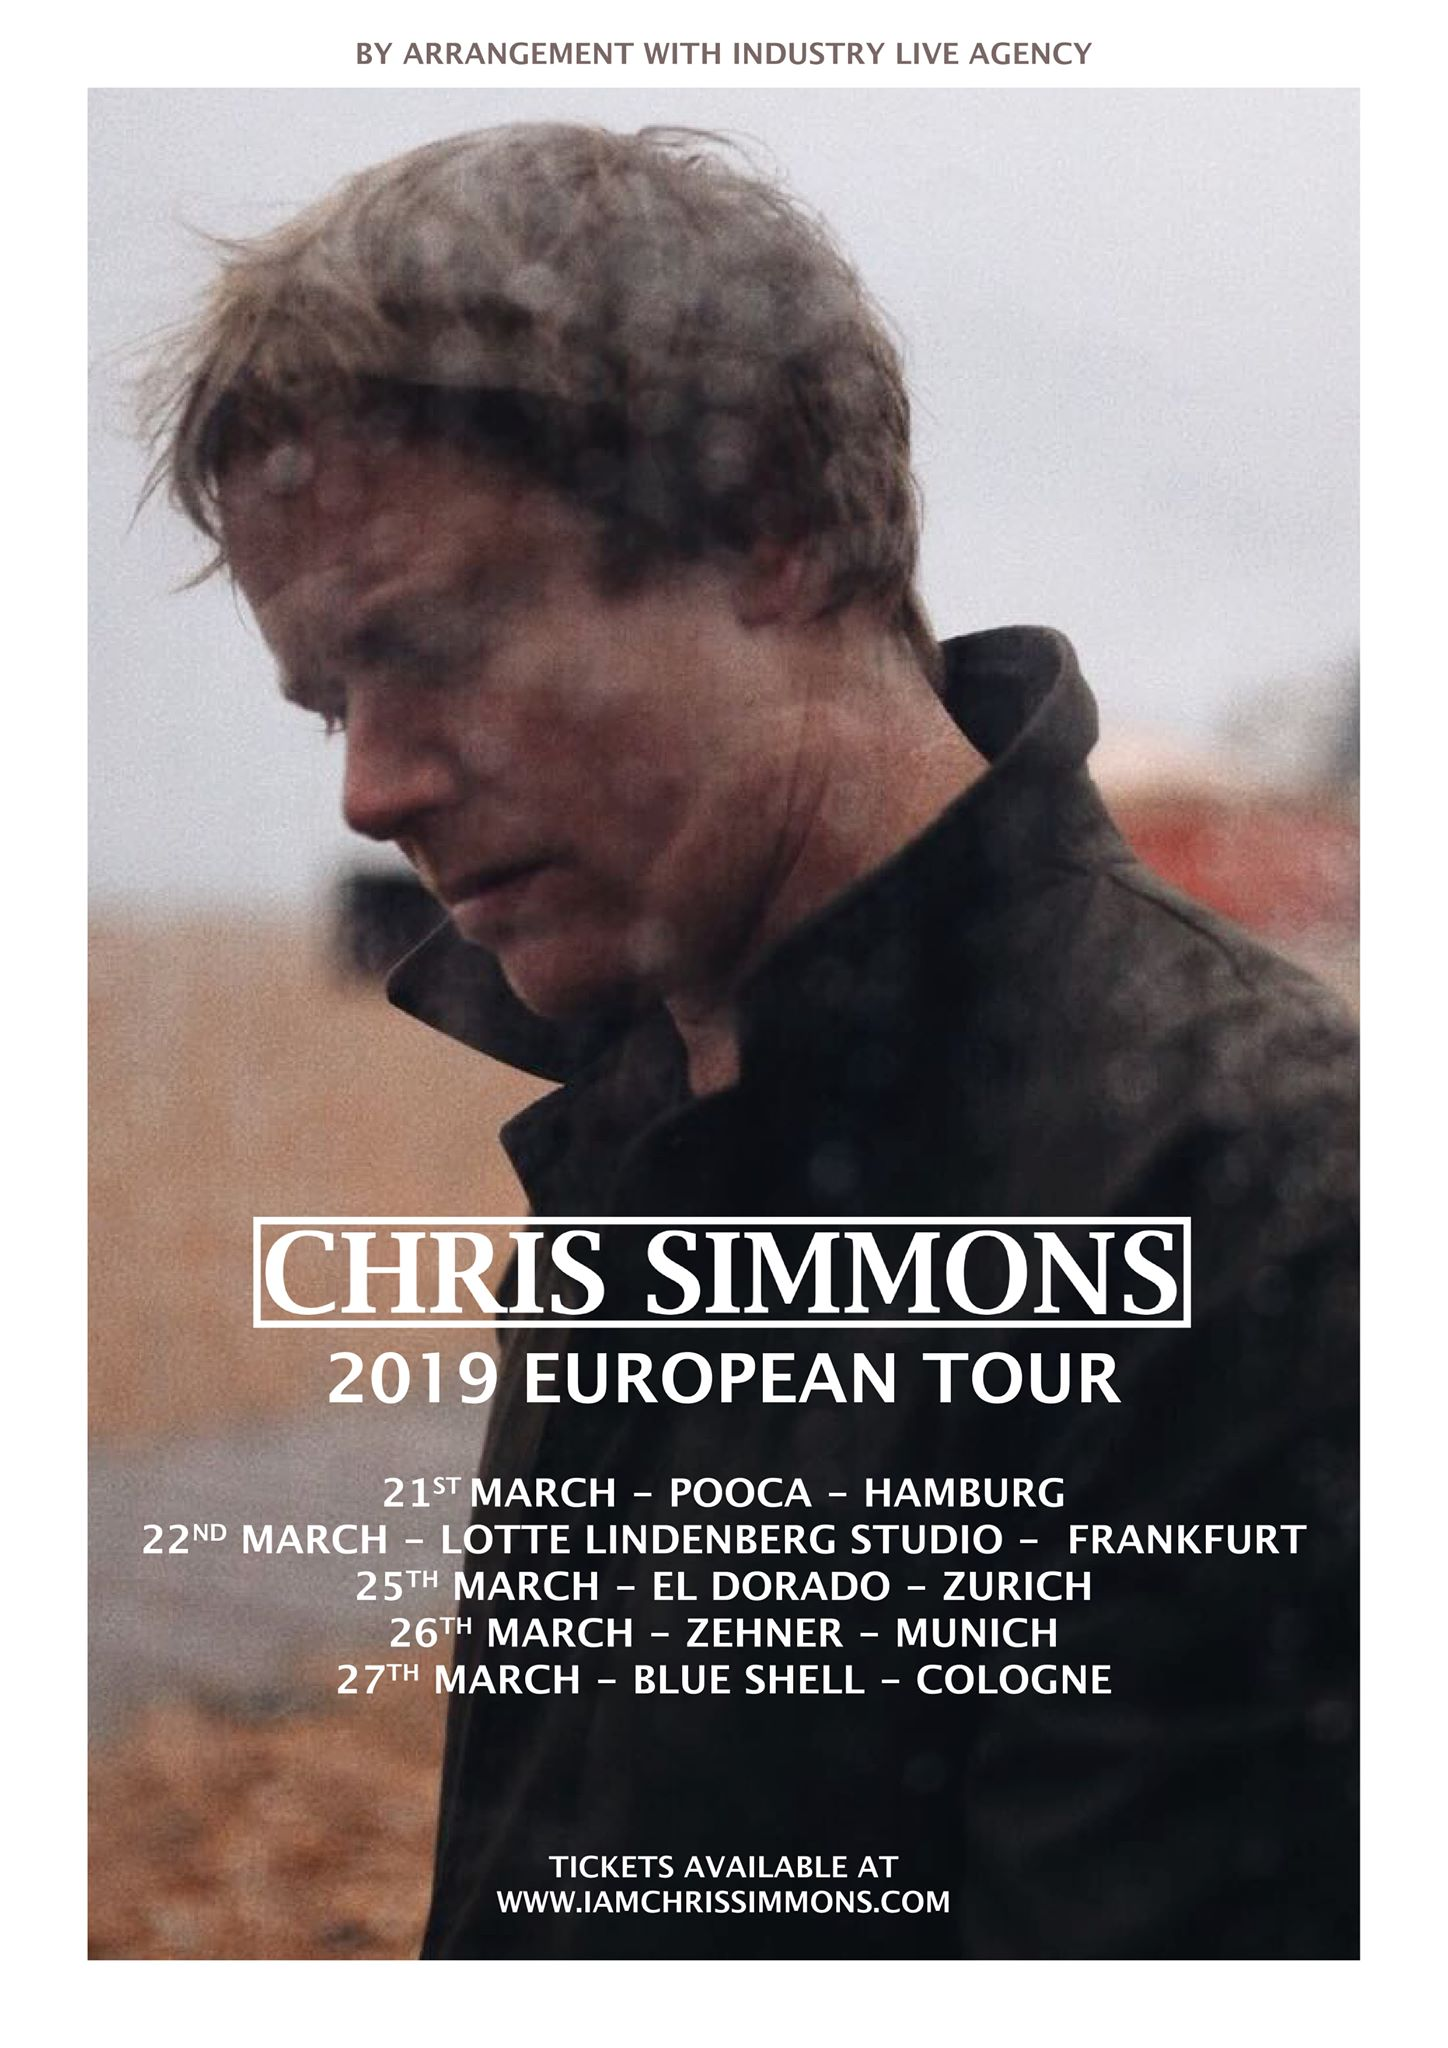 ChrisSimmonsEU_Tour.jpg